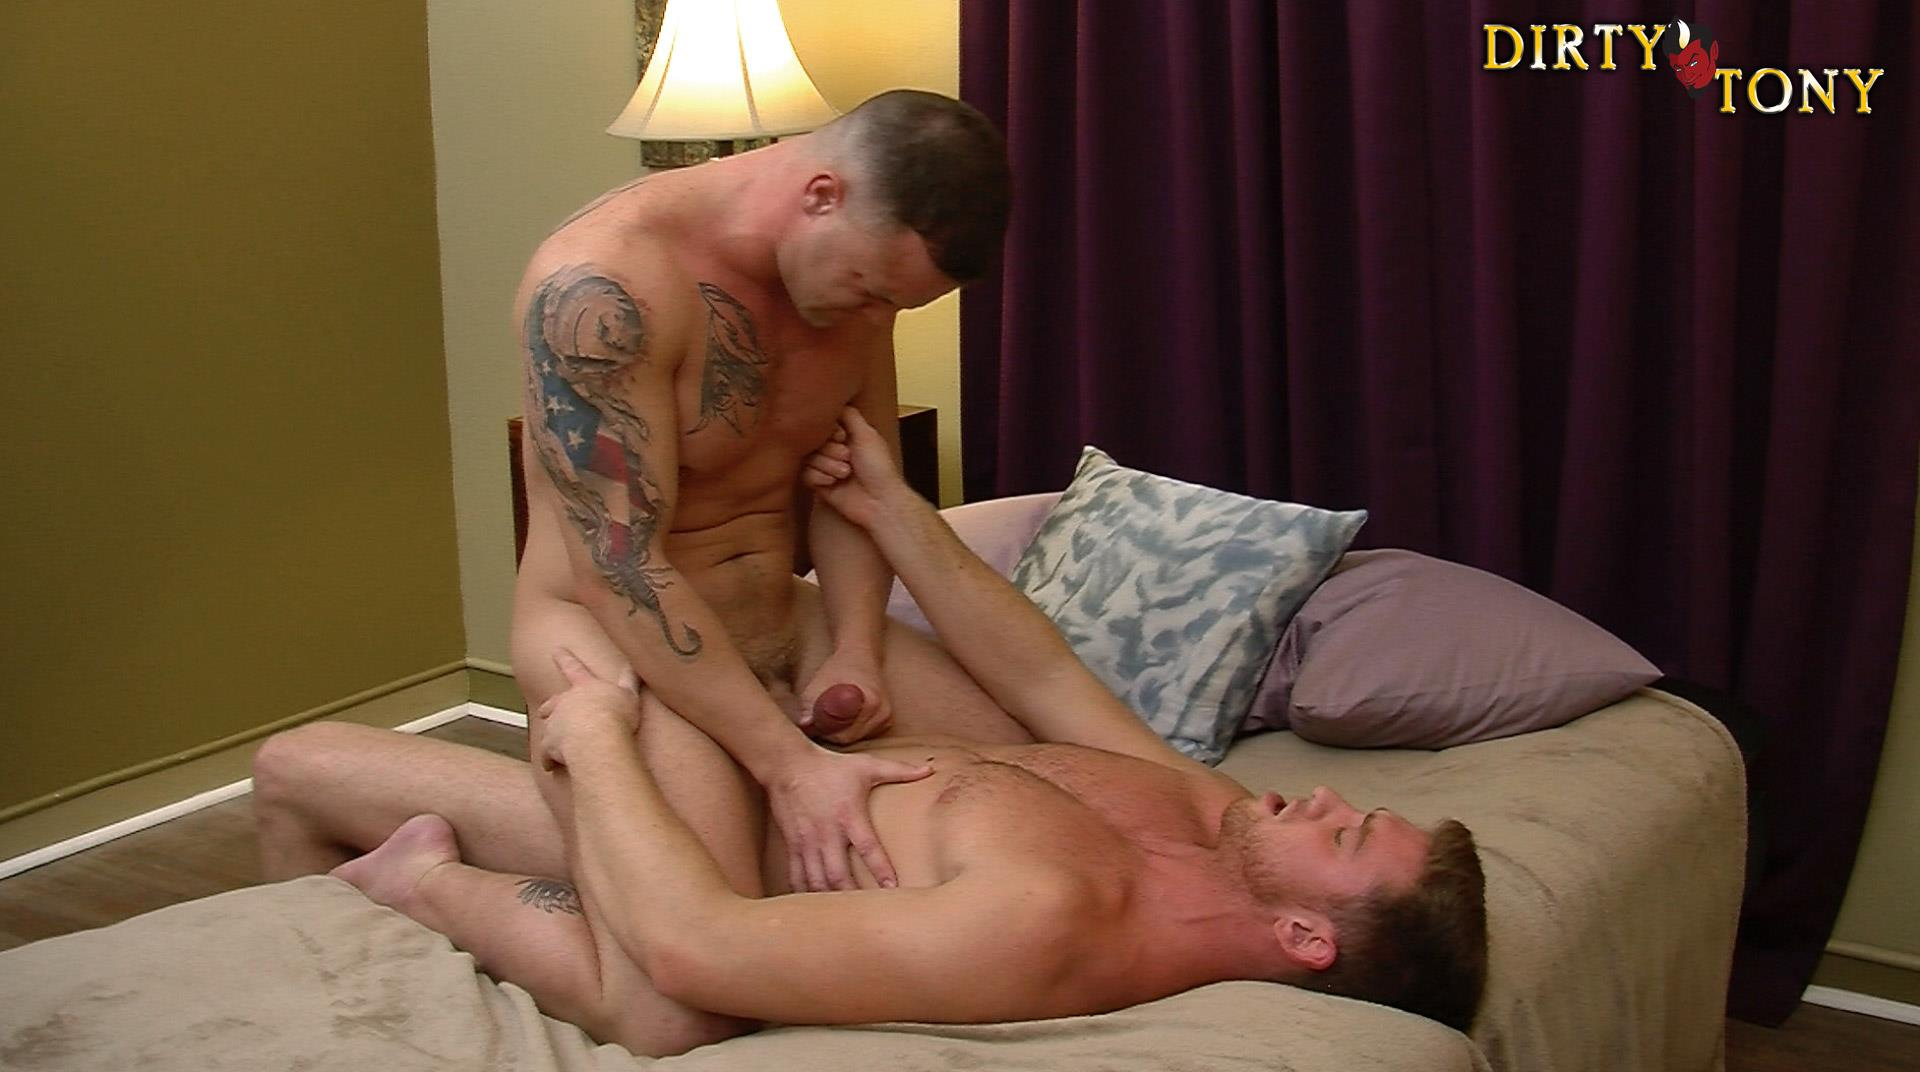 Dirty Tony Logan Blake and Connor Maguire Marine Getting Fucked In the Ass Amateur Gay Porn 14 Former US Marine Takes A Big Uncut Cock Up The Ass